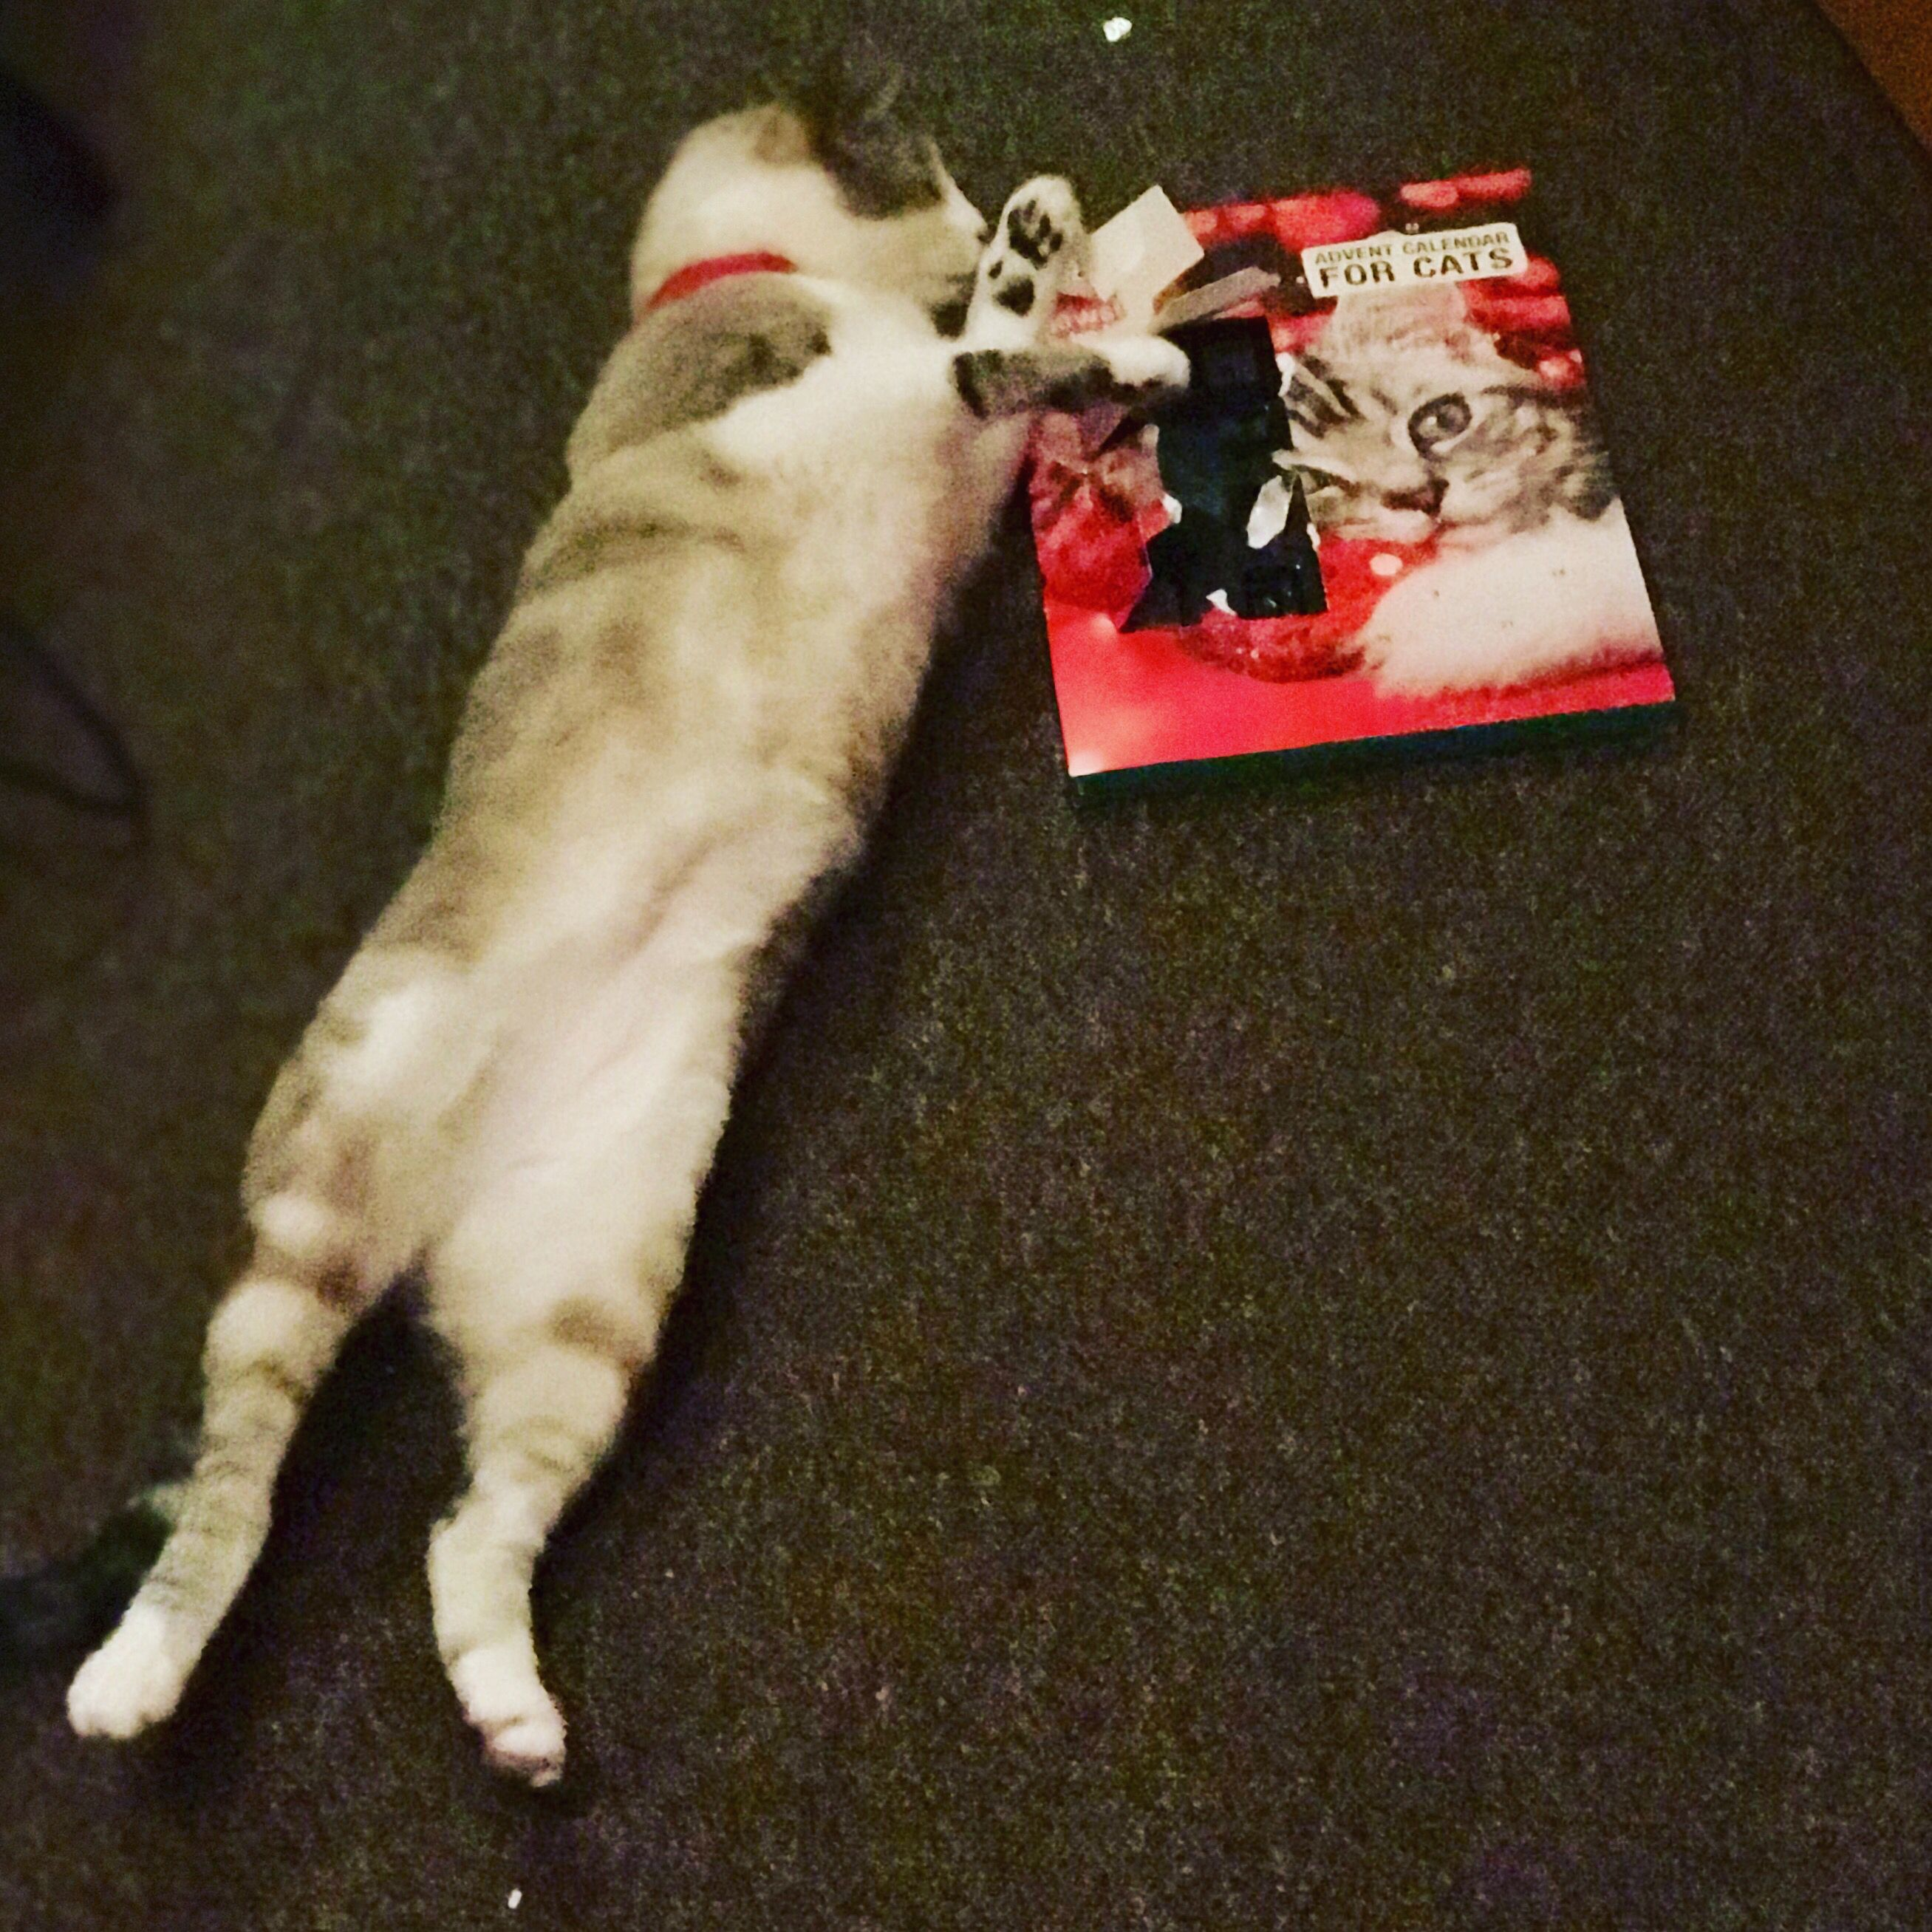 Bubbly Bubbles is obsessed with the Cats advent calendar